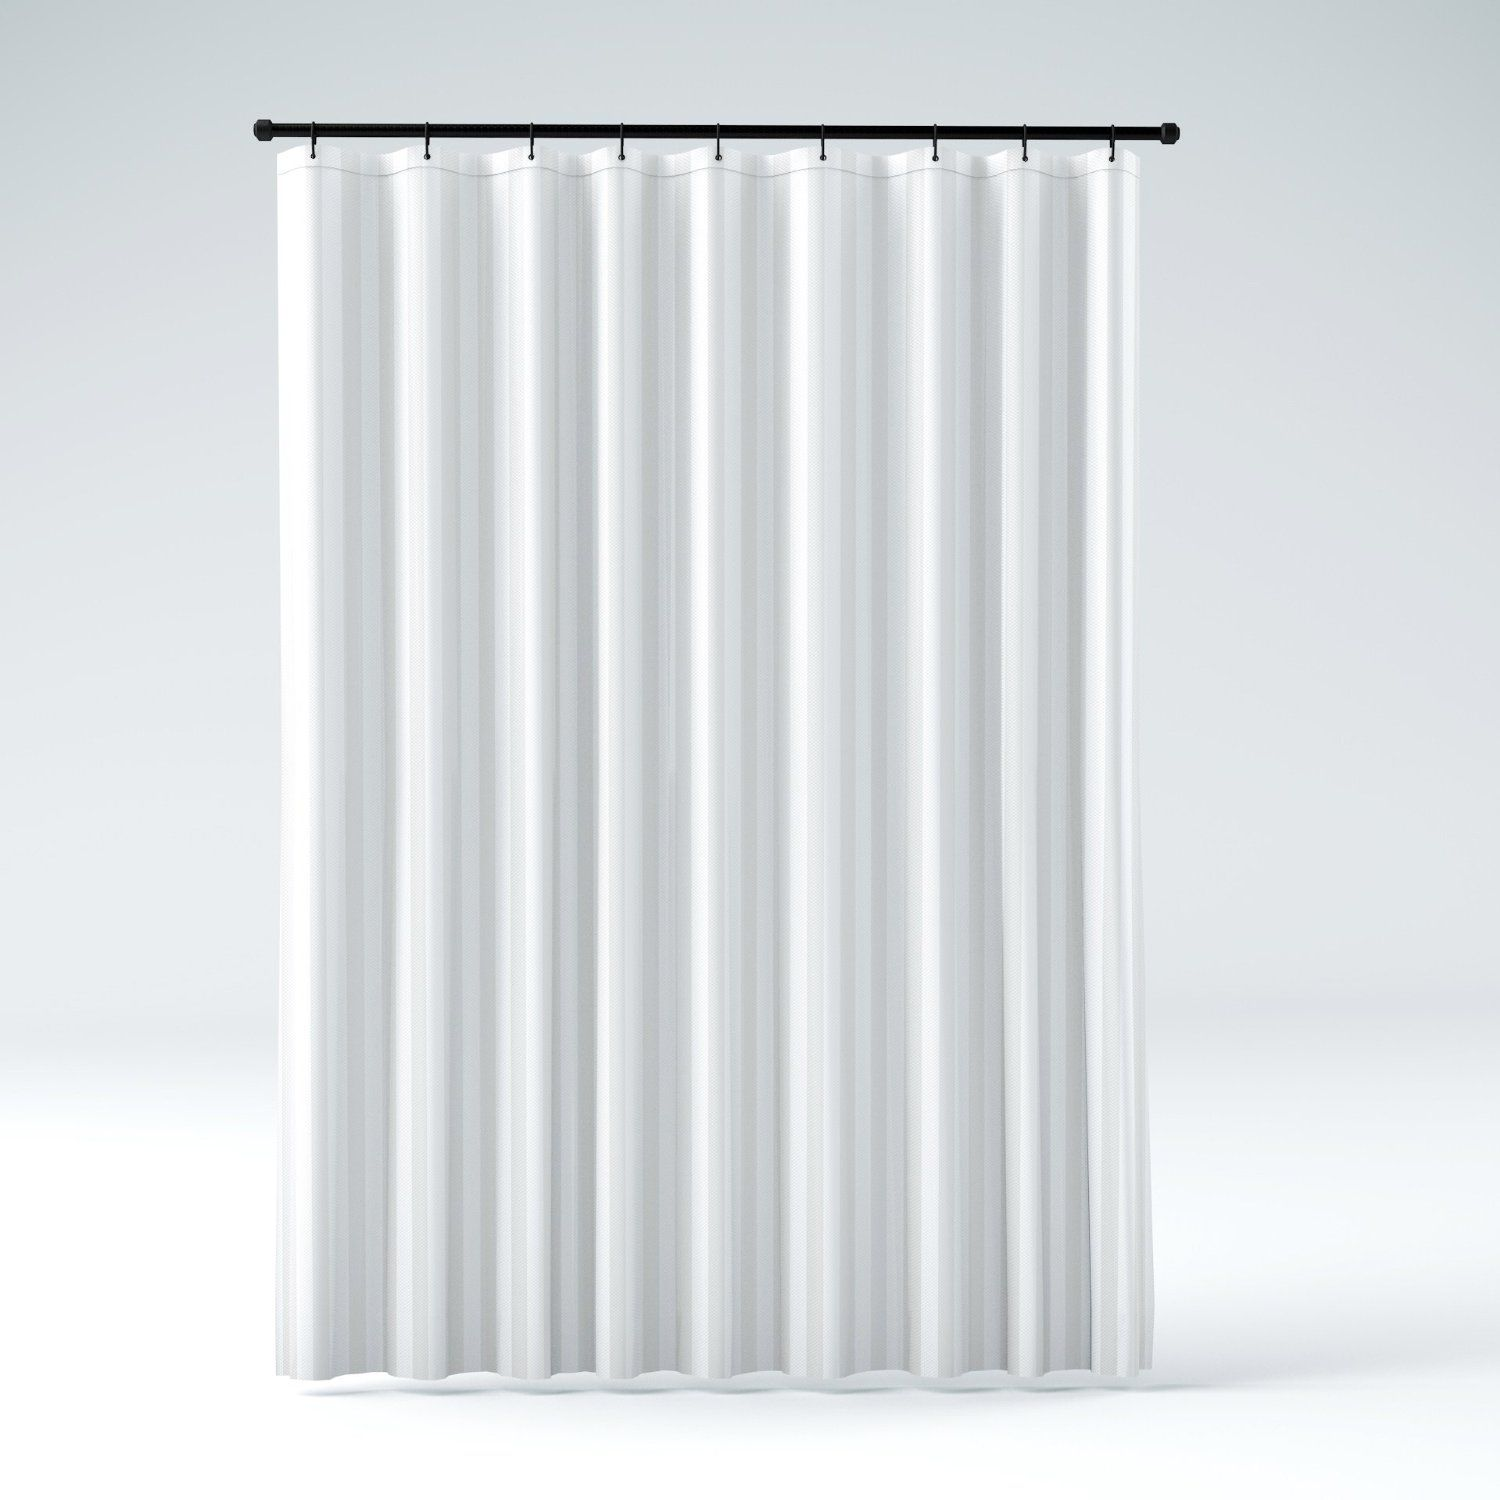 Fabric Shower Curtain Liner Stall Size | Shower Curtain | Pinterest